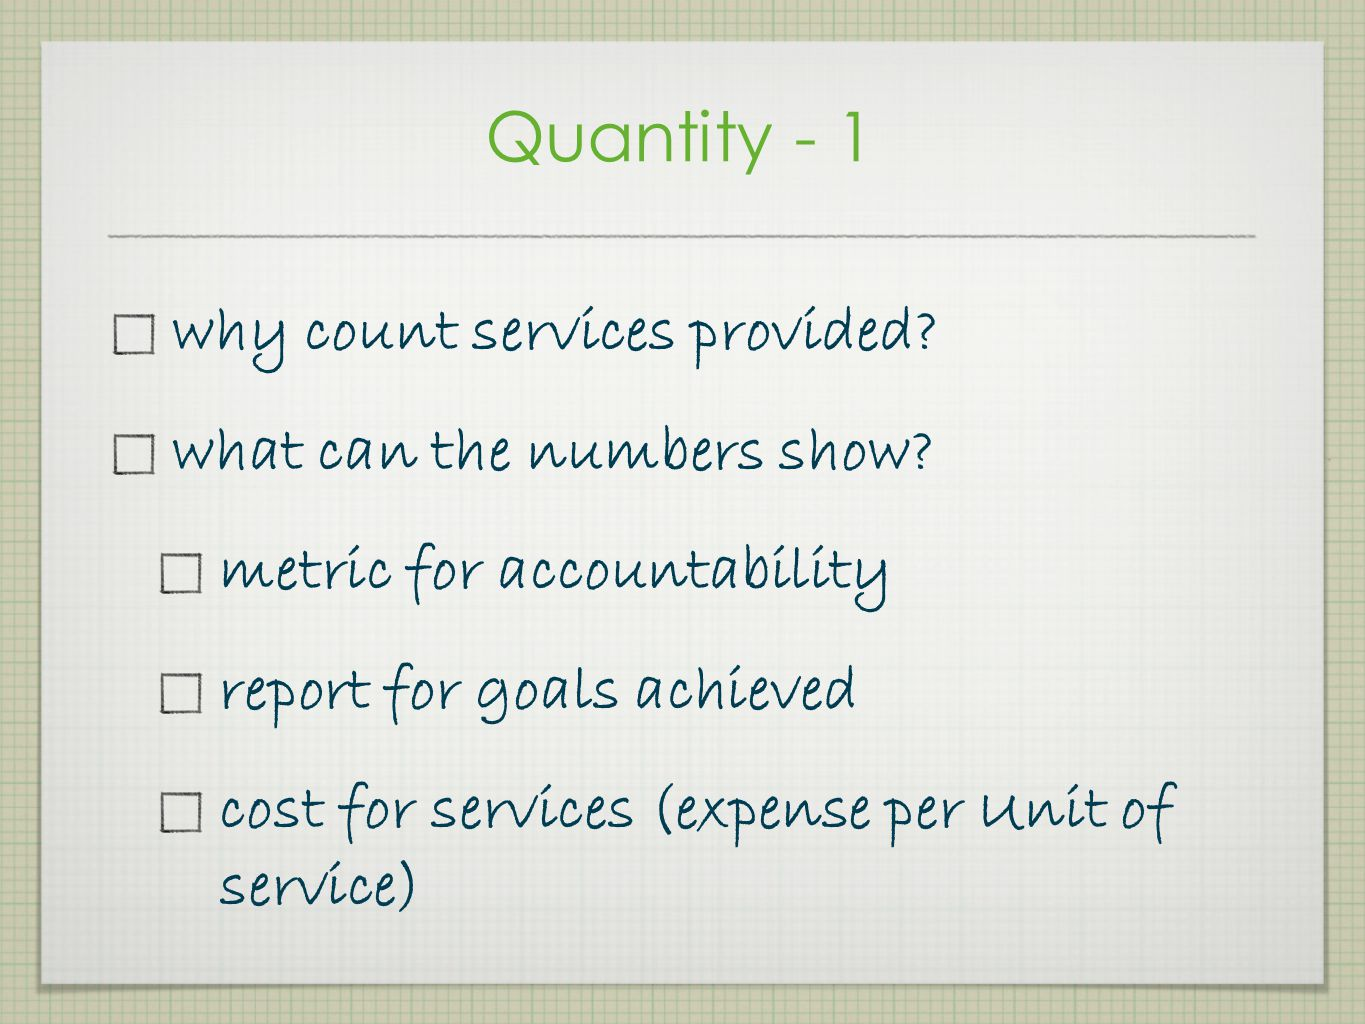 Quantity - 1 why count services provided what can the numbers show